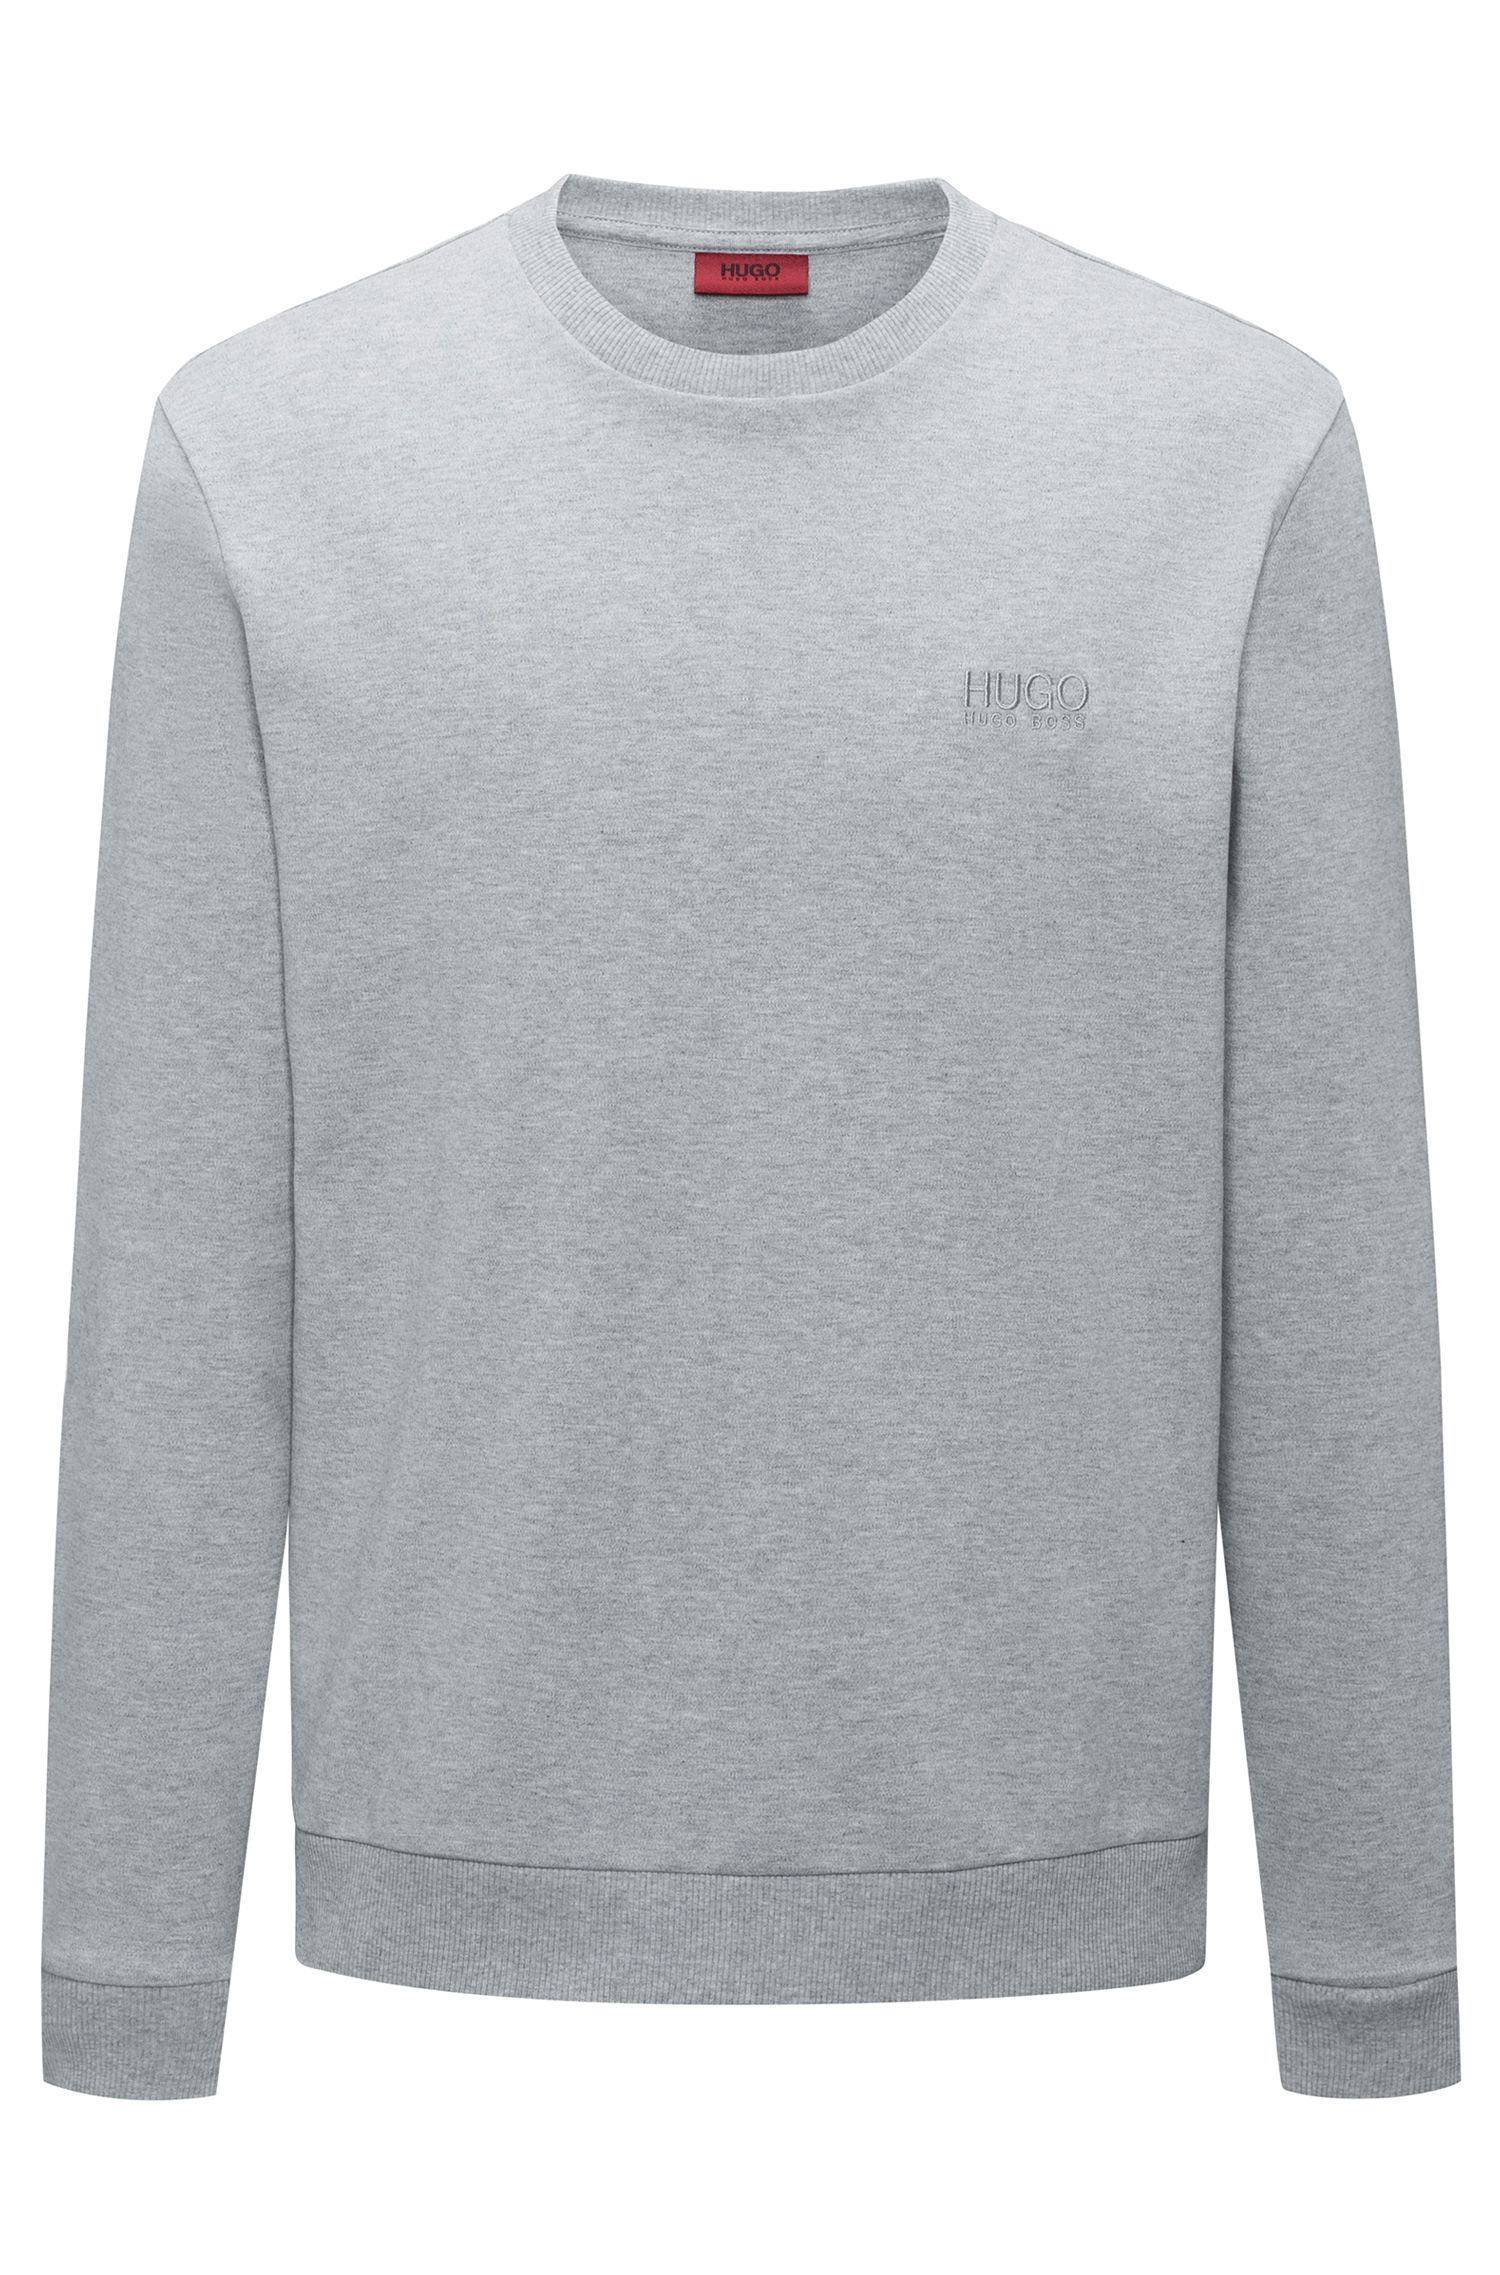 Sweat logo en coton interlock